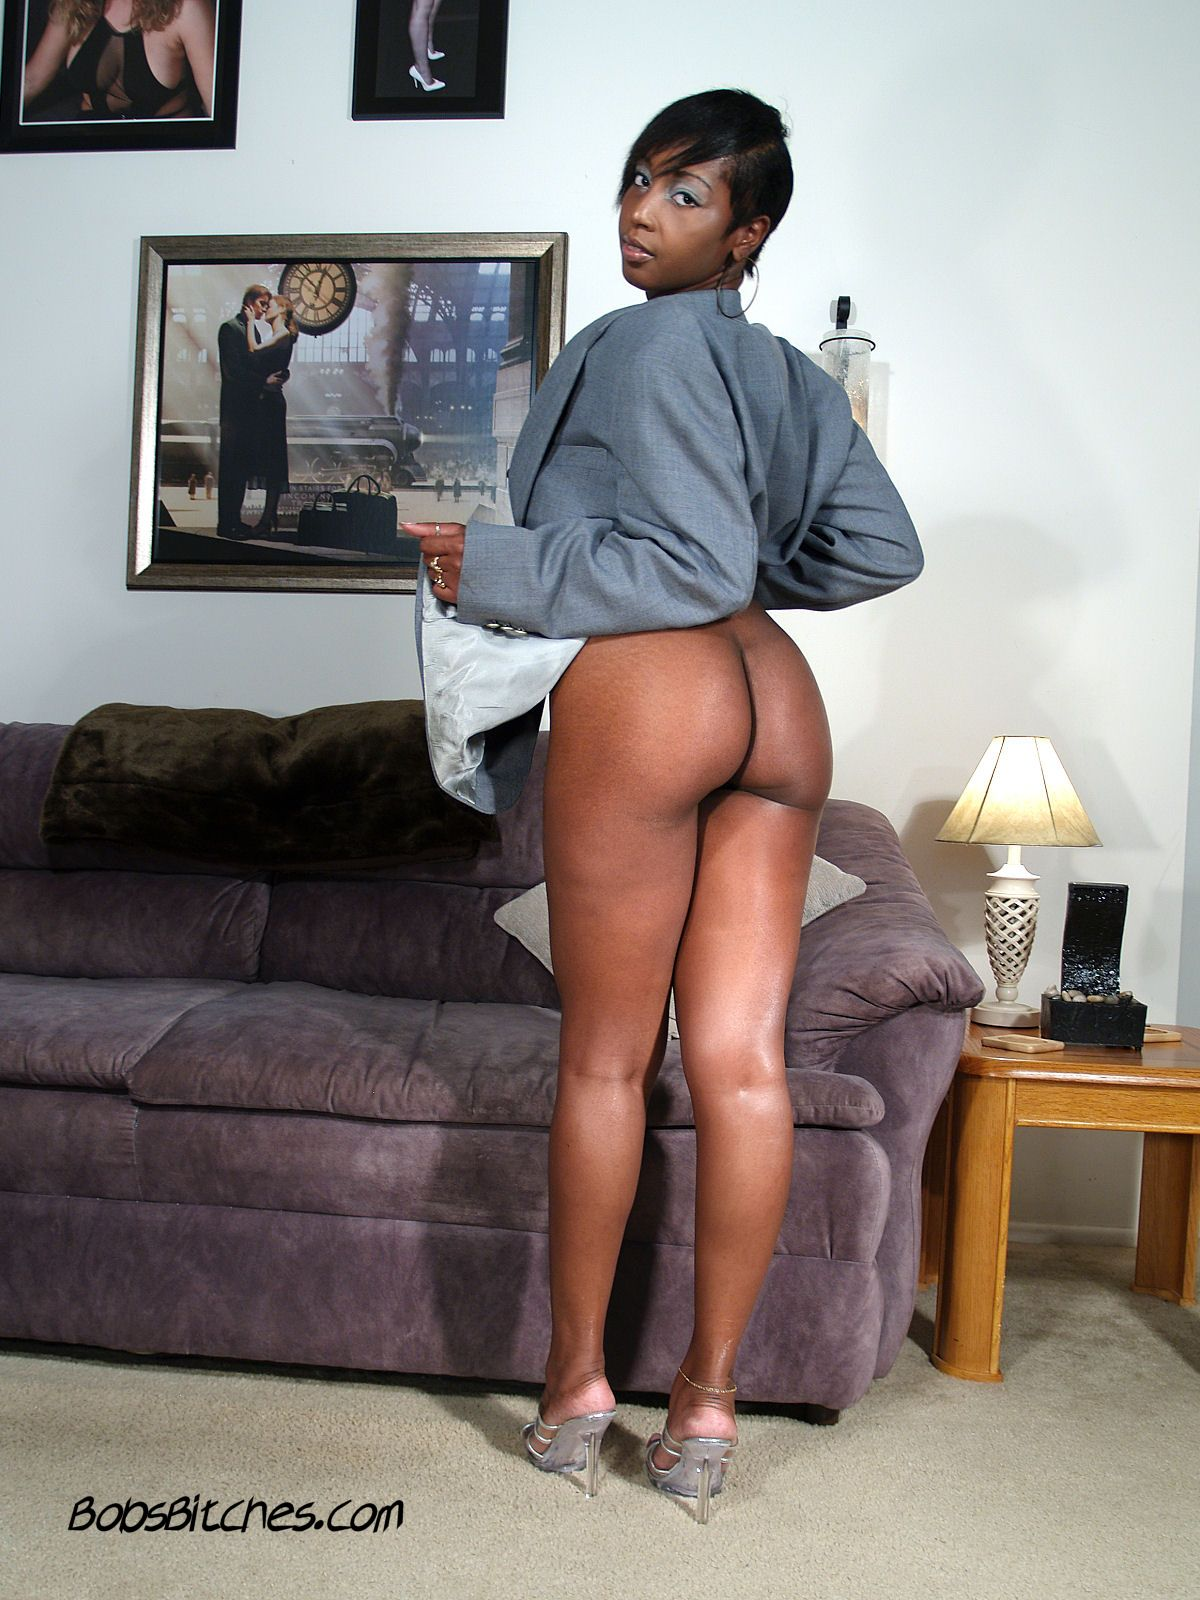 Sage, the ebony milf exposes her big black booty and sexy legs in high heels.